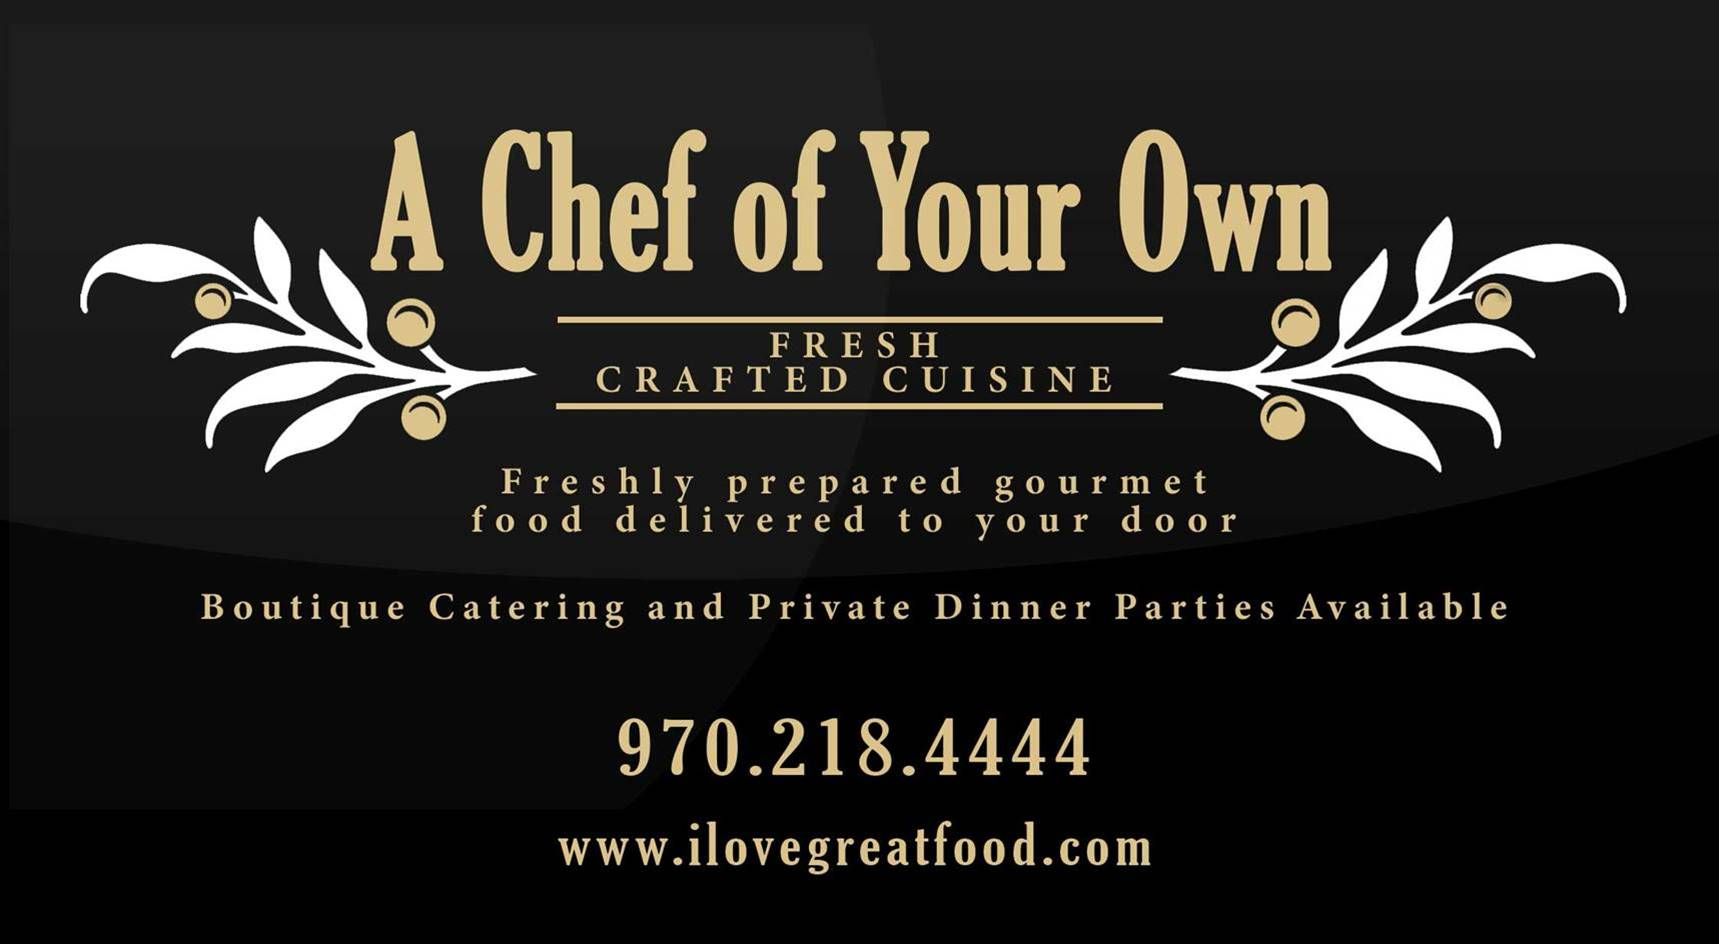 A Chef of Your Own Fresh Crafted Cuisine-Delivery and Catering